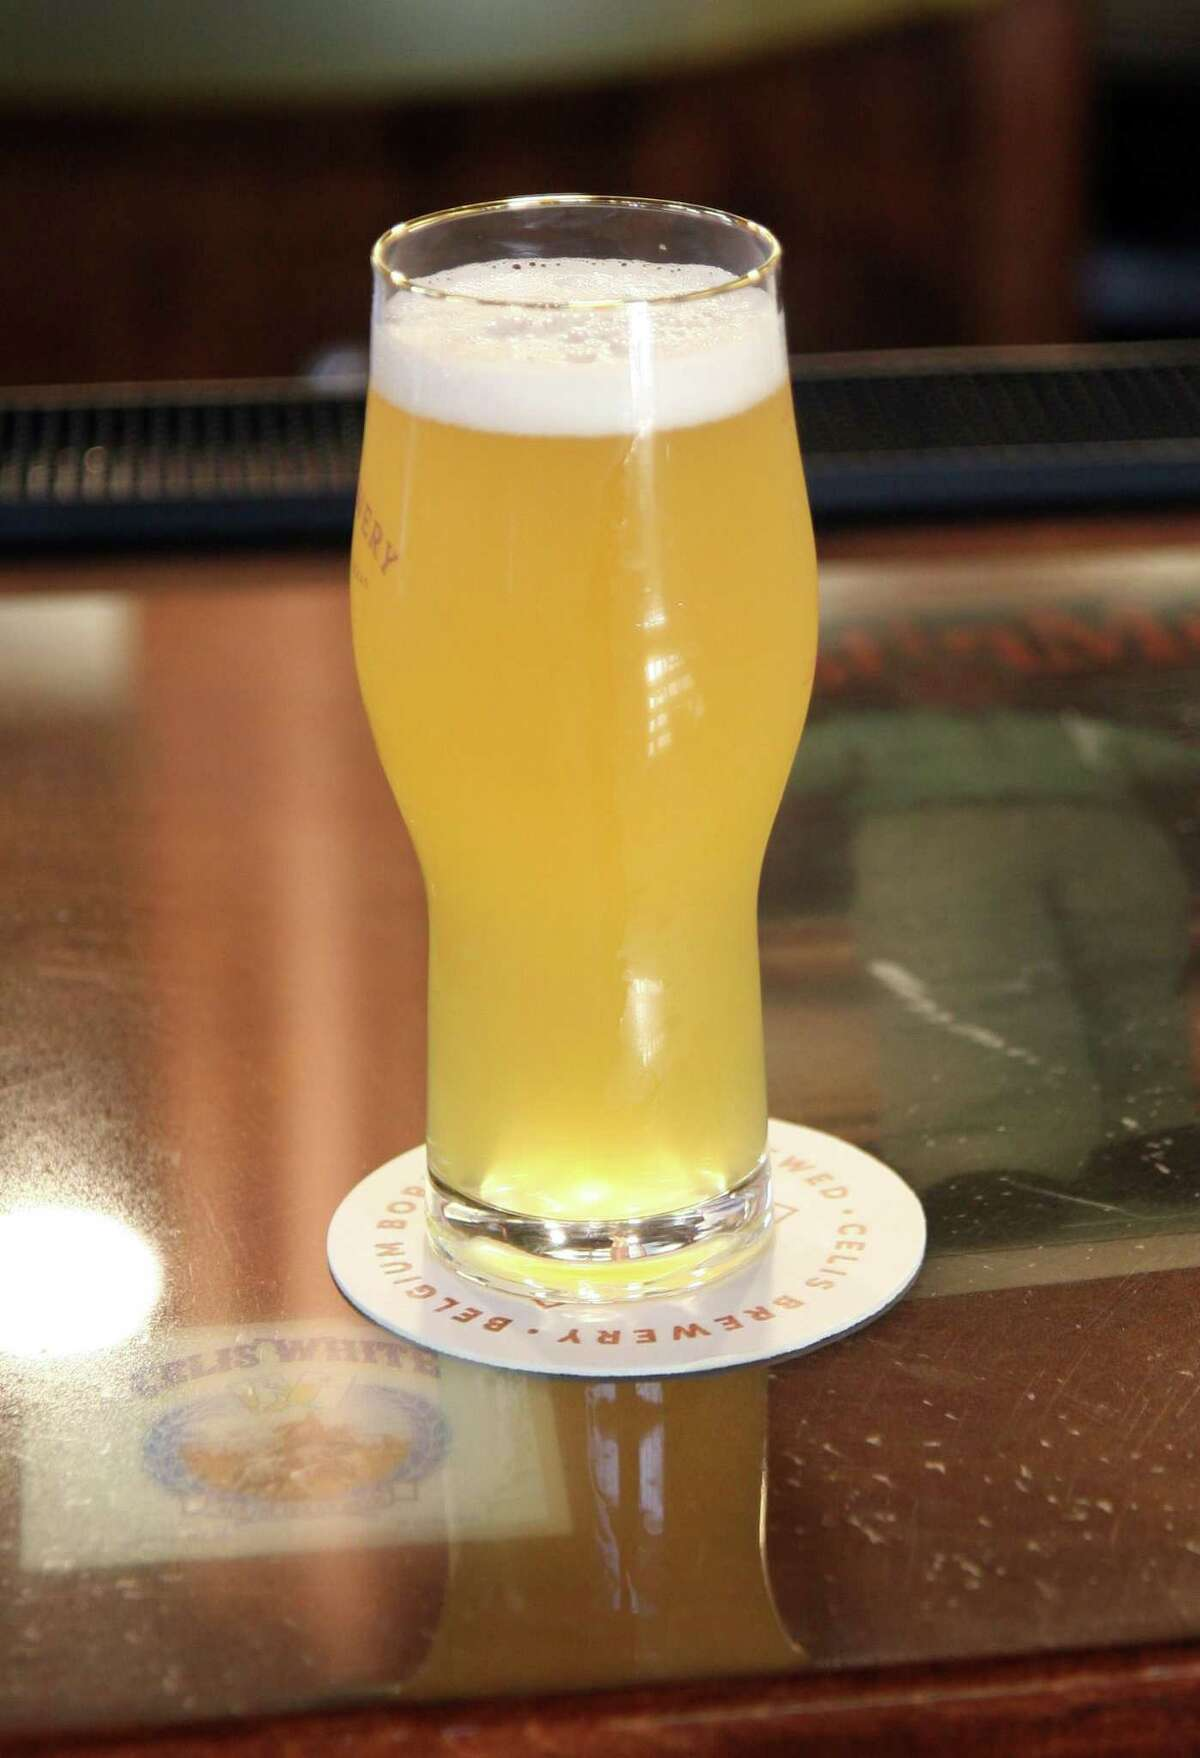 Celis White, a classic Belgian-style witbier, displays its classic straw color, haziness, and thick, bright head.